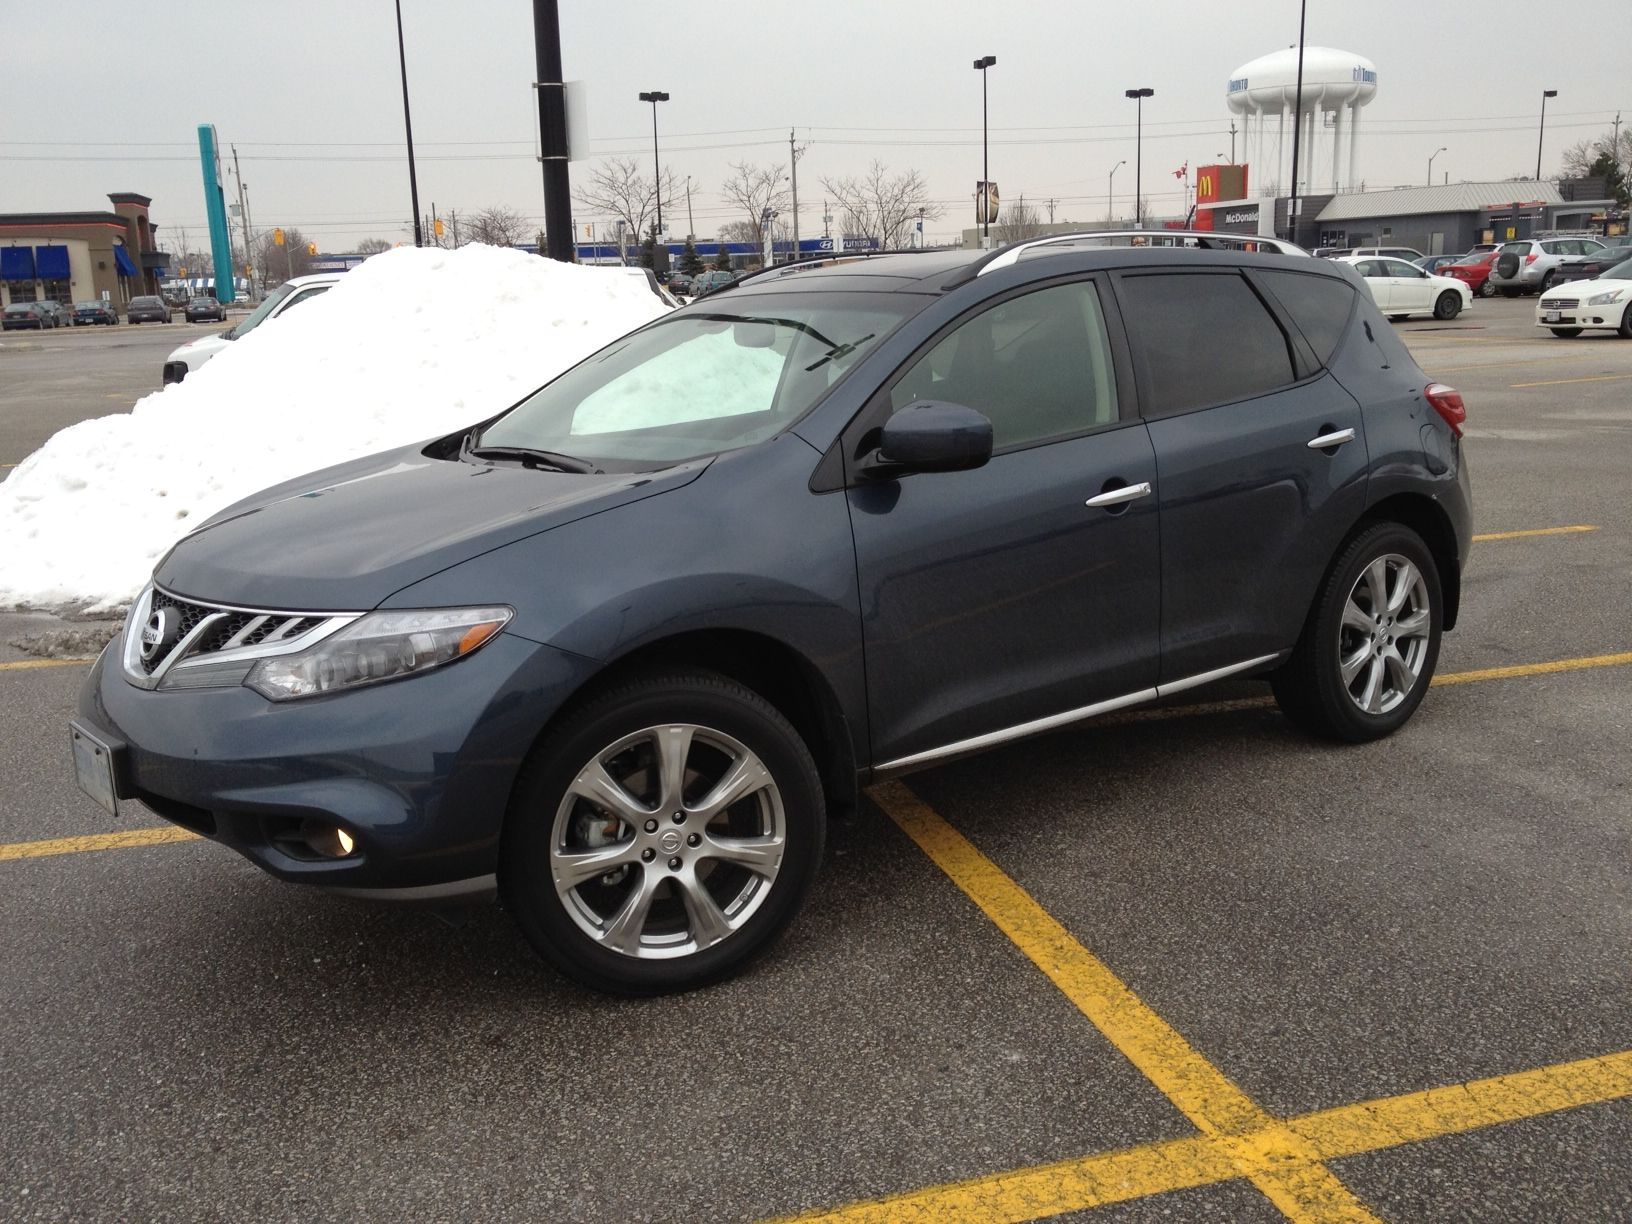 s murano lot en on title springfield in nissan of carfinder sale online auto white auctions copart mo certificate